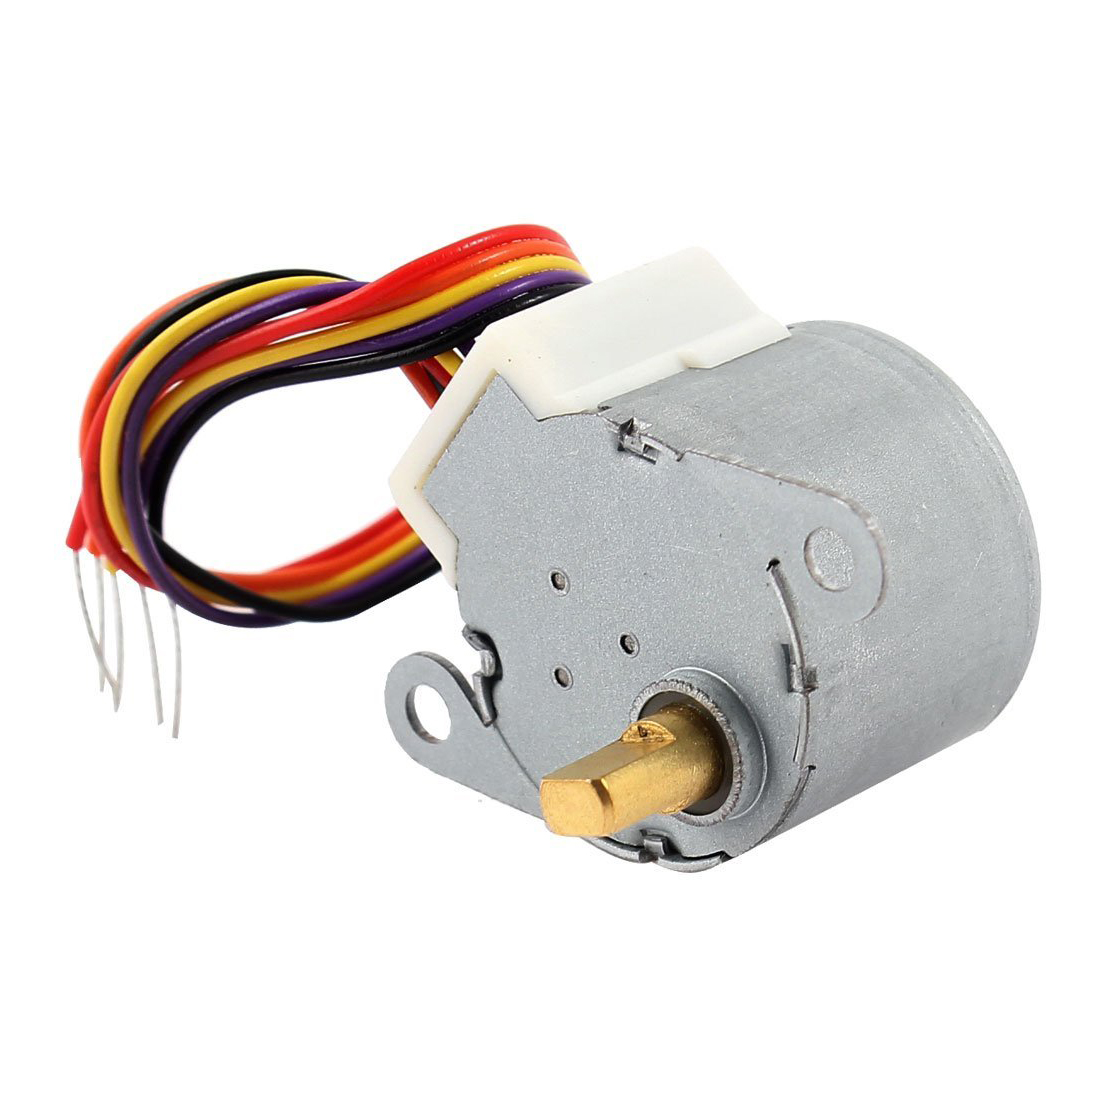 SHGO Hot <font><b>DC</b></font> <font><b>12V</b></font> CNC Reducing Stepping Stepper Motor 0.6A 10oz.in <font><b>24BYJ48</b></font> Silver image